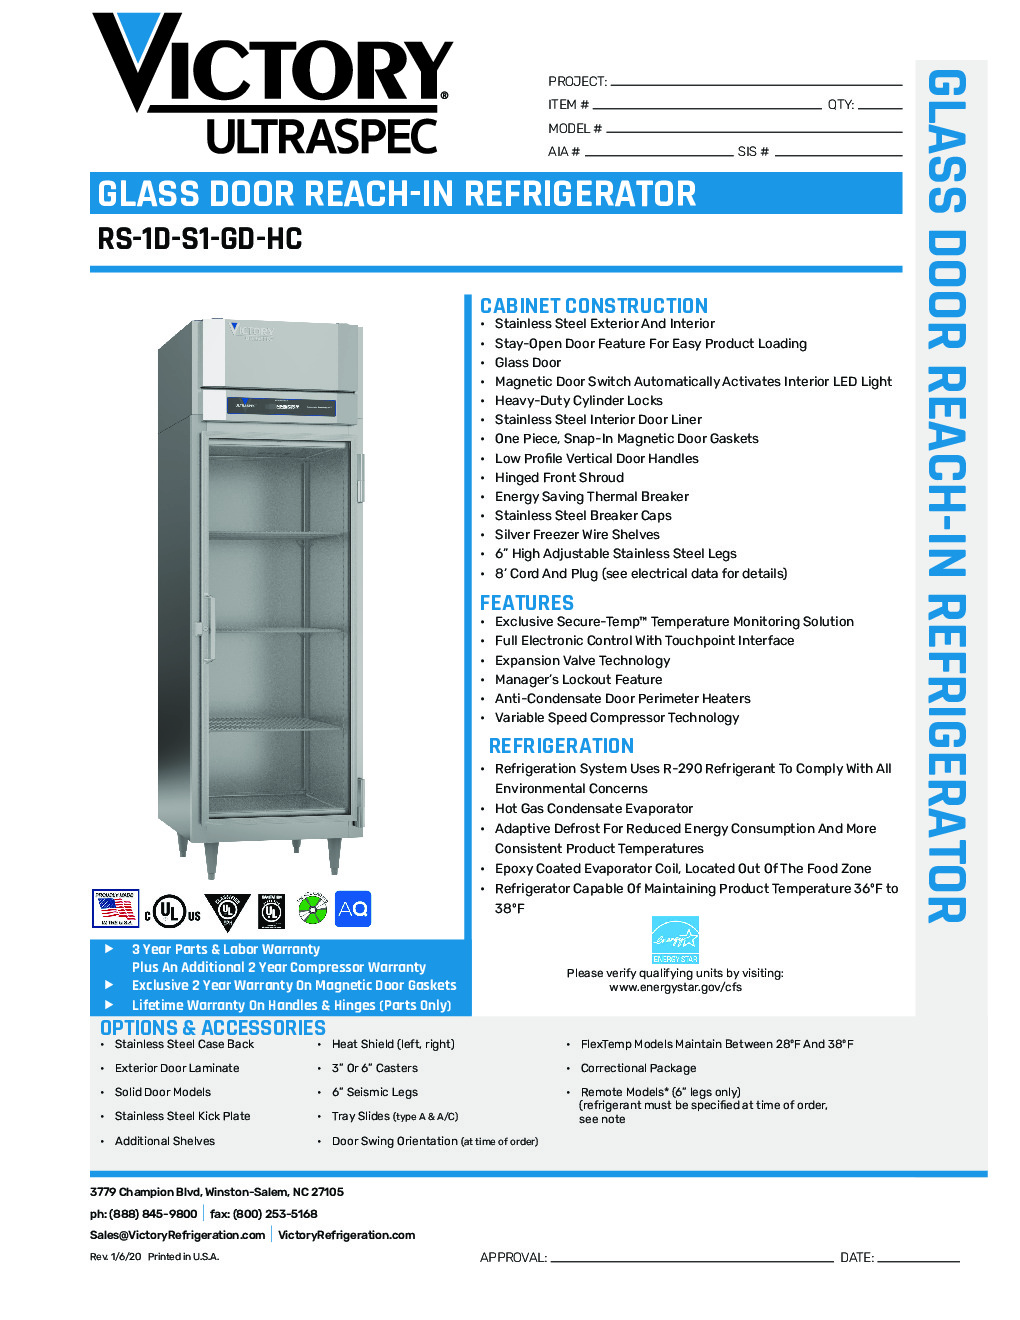 Victory RS-1D-S1-GD-HC Reach-In Refrigerator